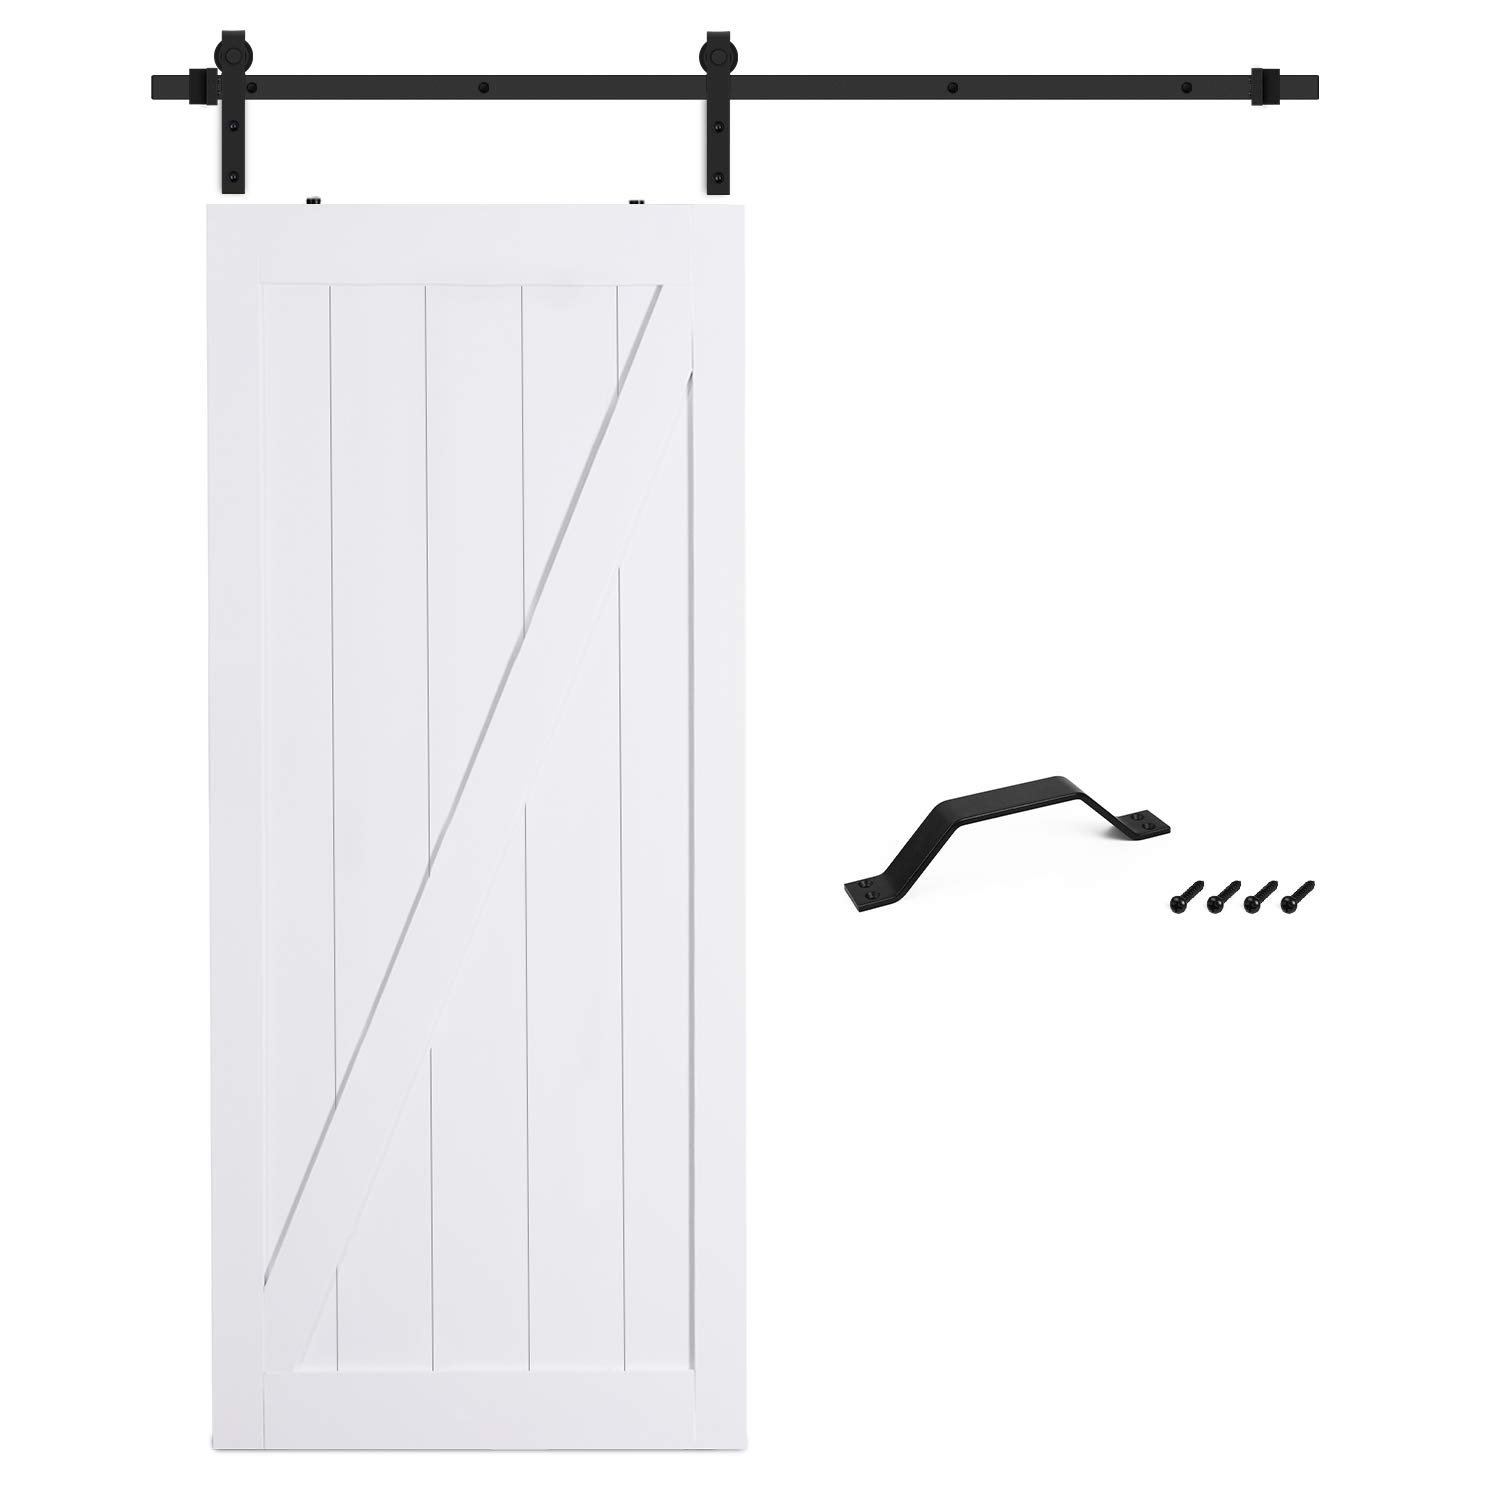 SMARTSTANDARD 36in x 84in Sliding Barn Door with 6.6ft BarnDoor Hardware Kit & Handle, Pre-Drilled Ready to Assemble Wood Slab Covered with Water-Proof PVC Surface (White Z-Frame Panel), by SMARTSTANDARD (Image #3)